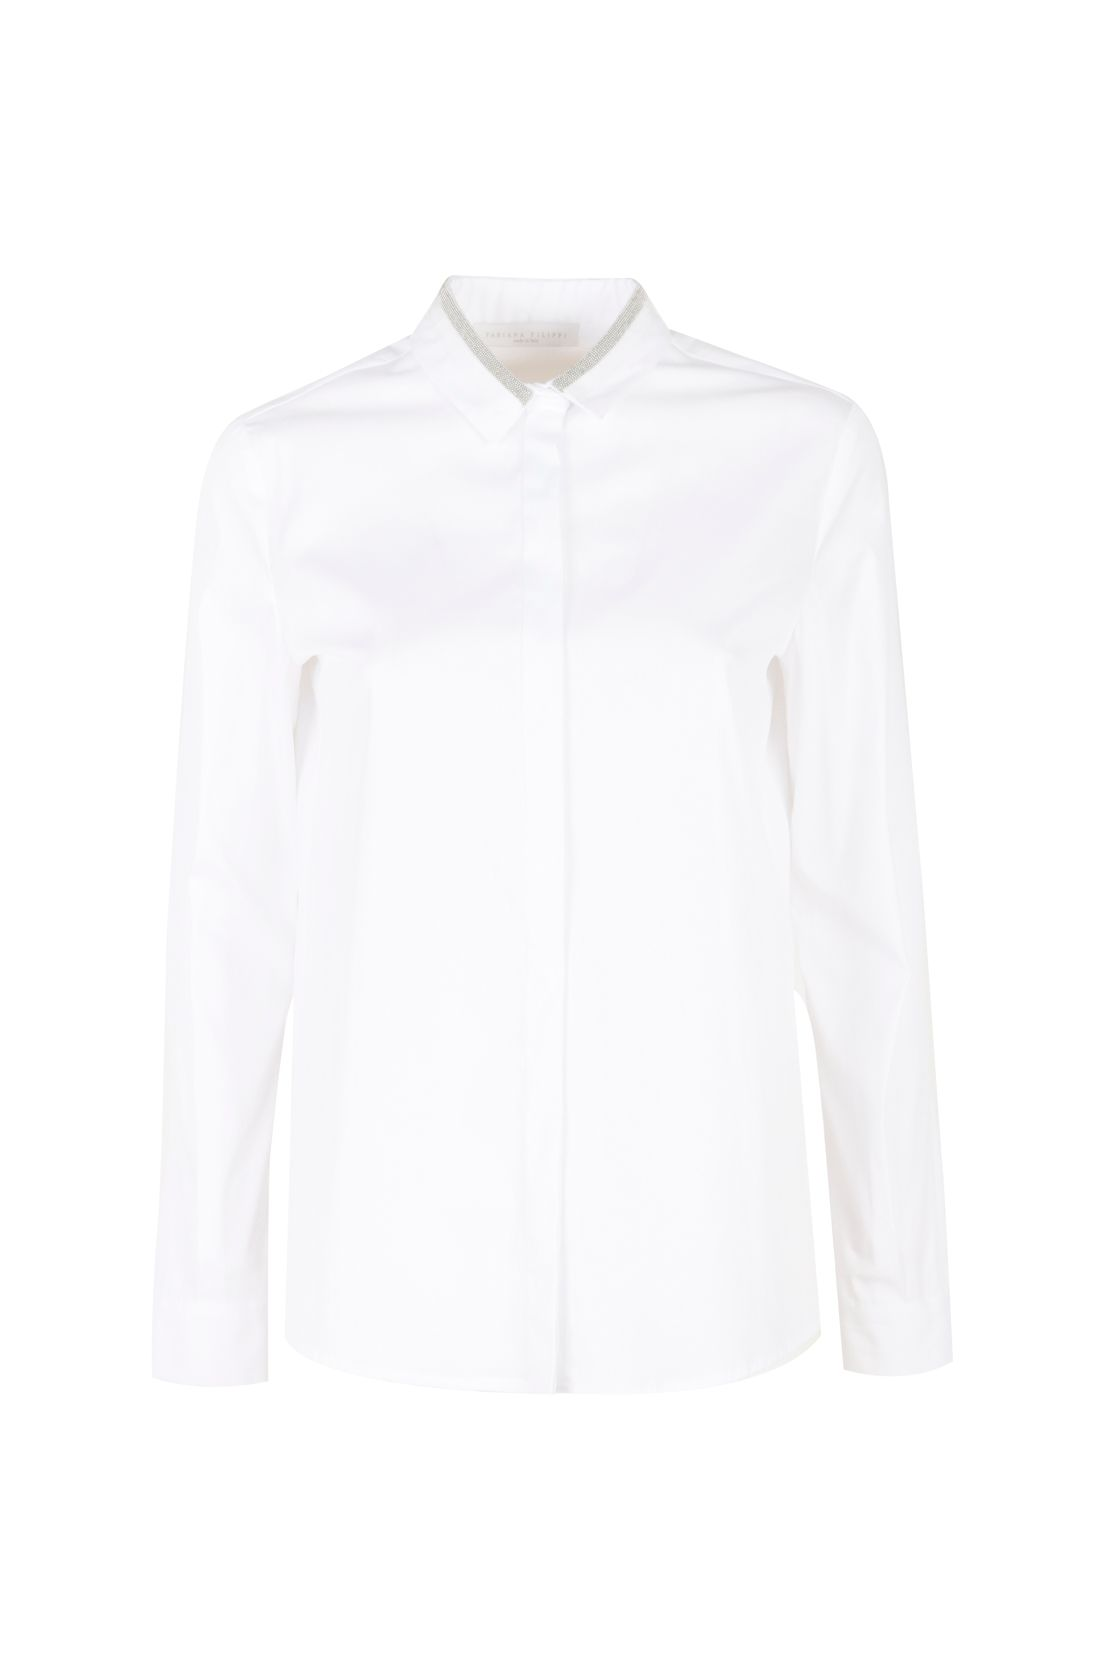 Fabiana Filippi FABIANA FILIPPI WOMEN'S CAD271W311F27521 WHITE COTTON SHIRT